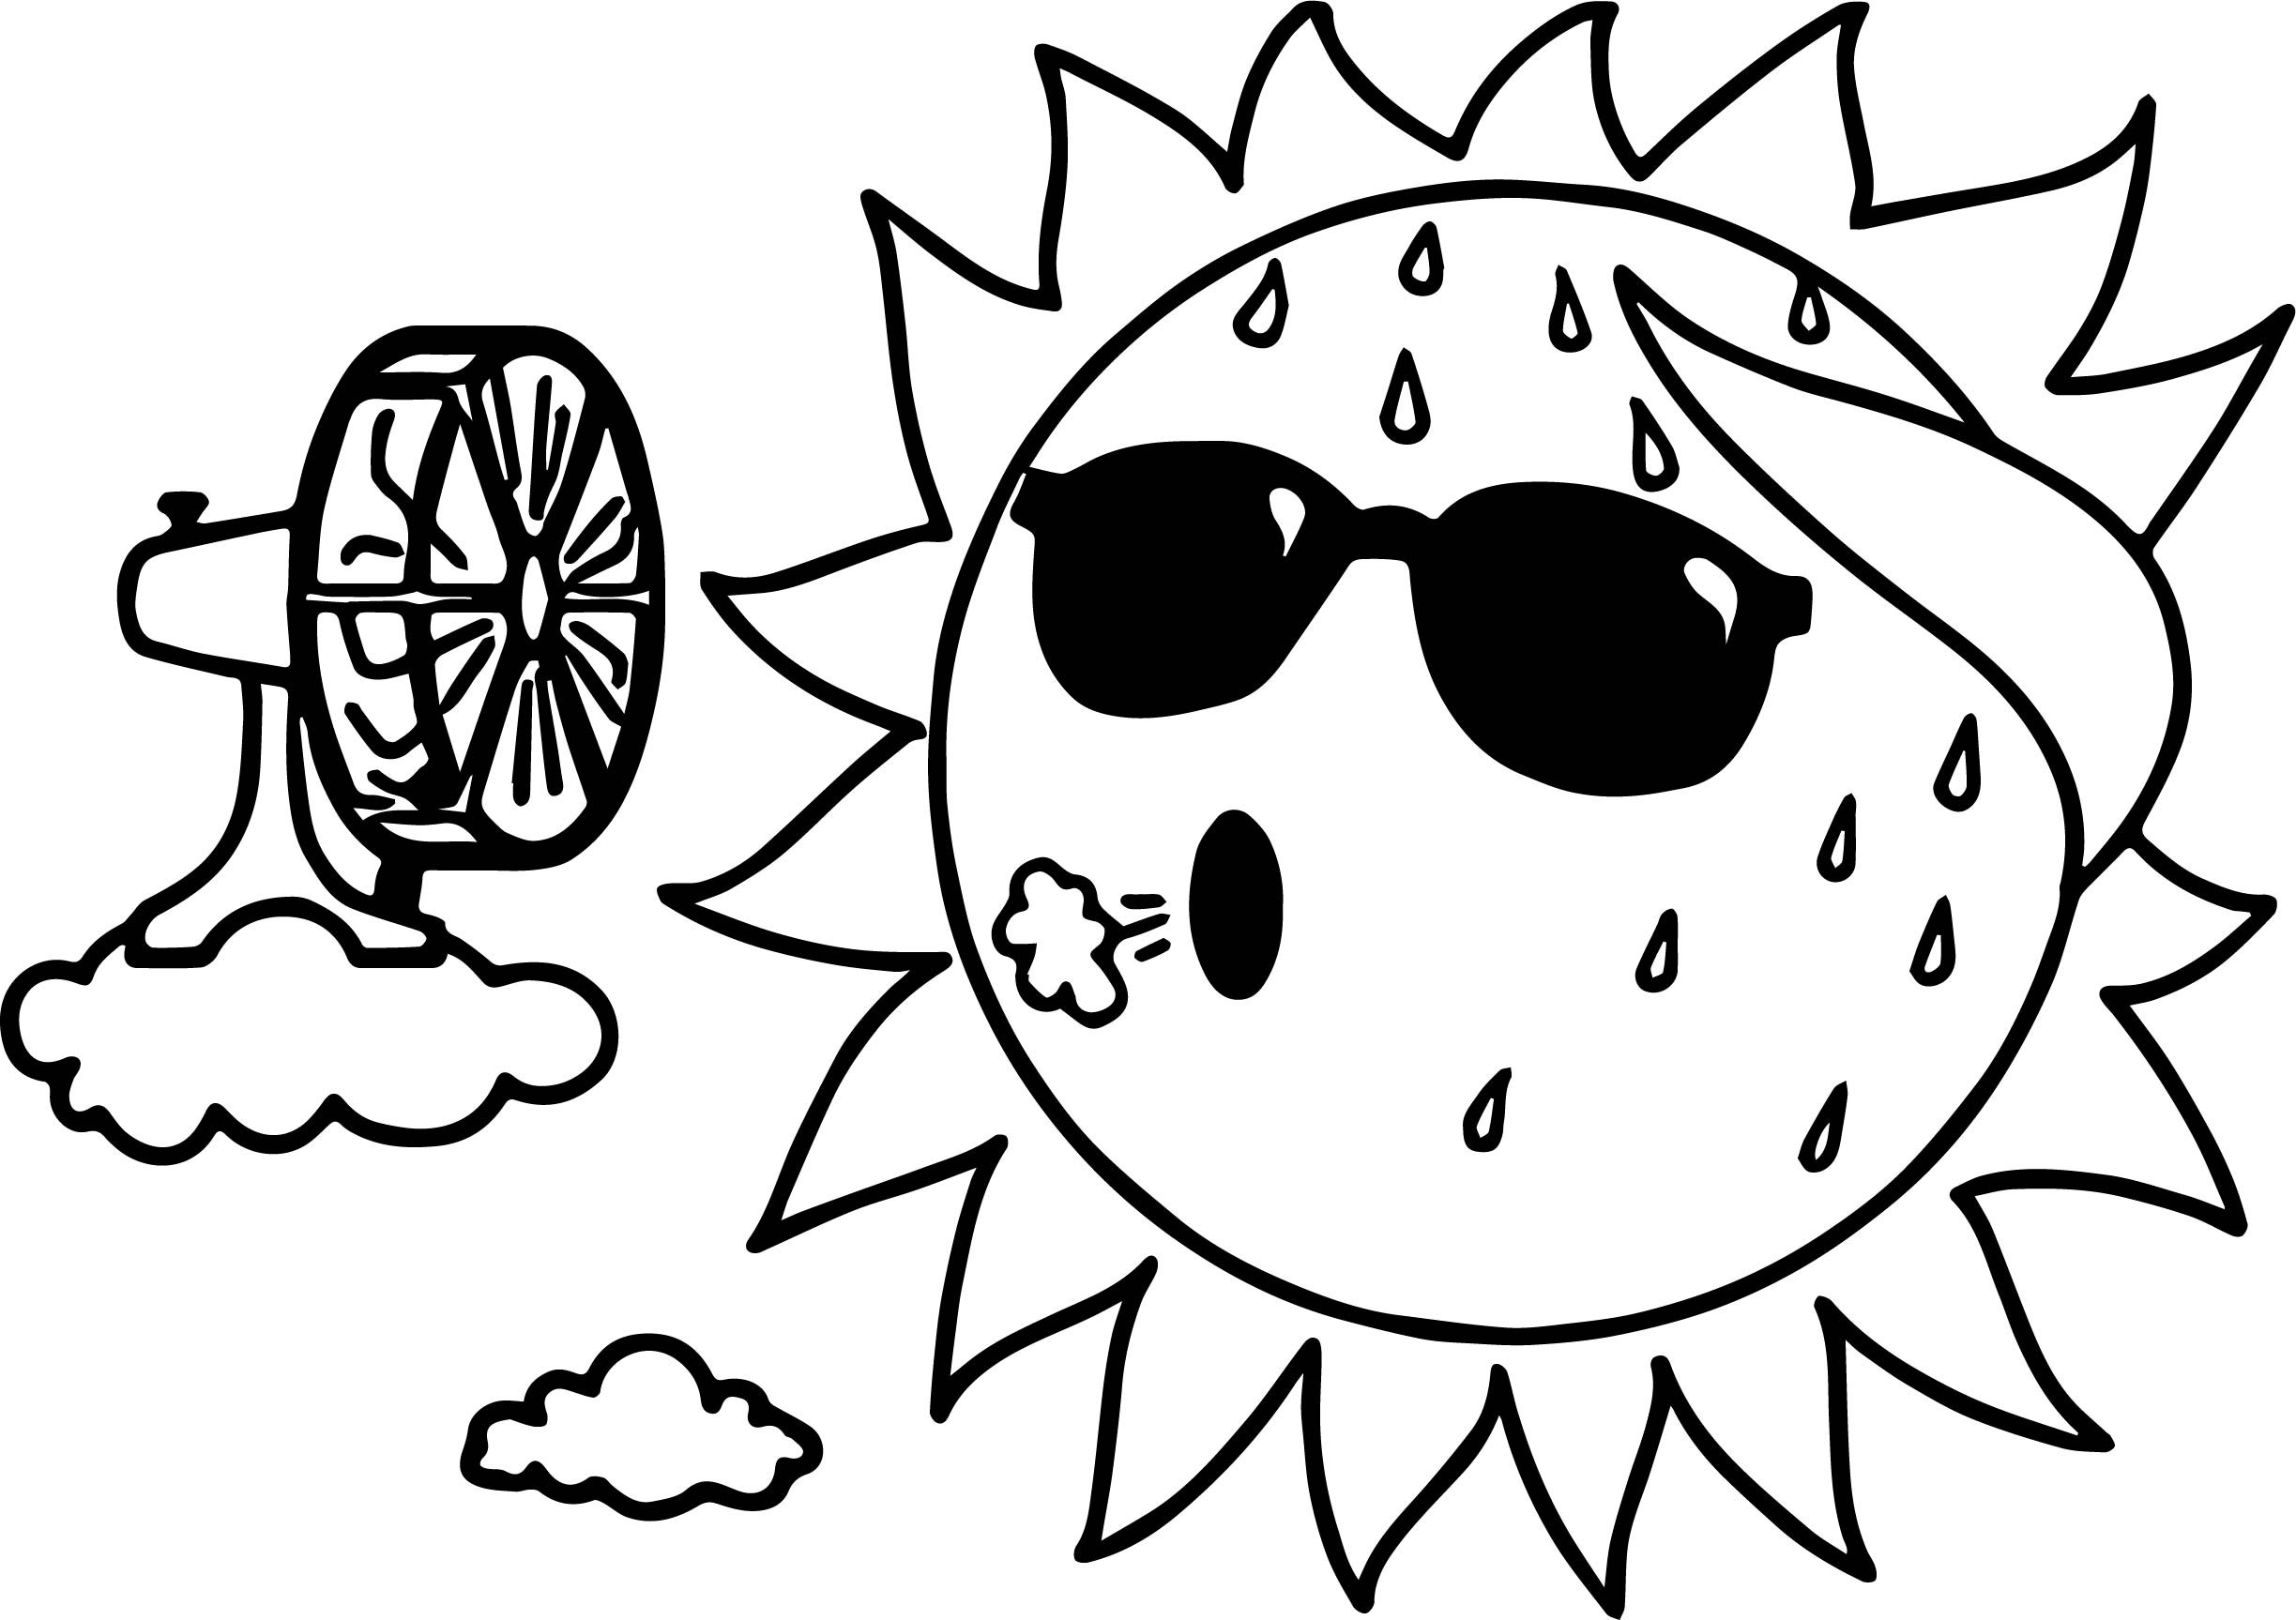 2447x1727 Summer Coloring Pages With Sun For Kids Awesome Too Hot Summer Sun